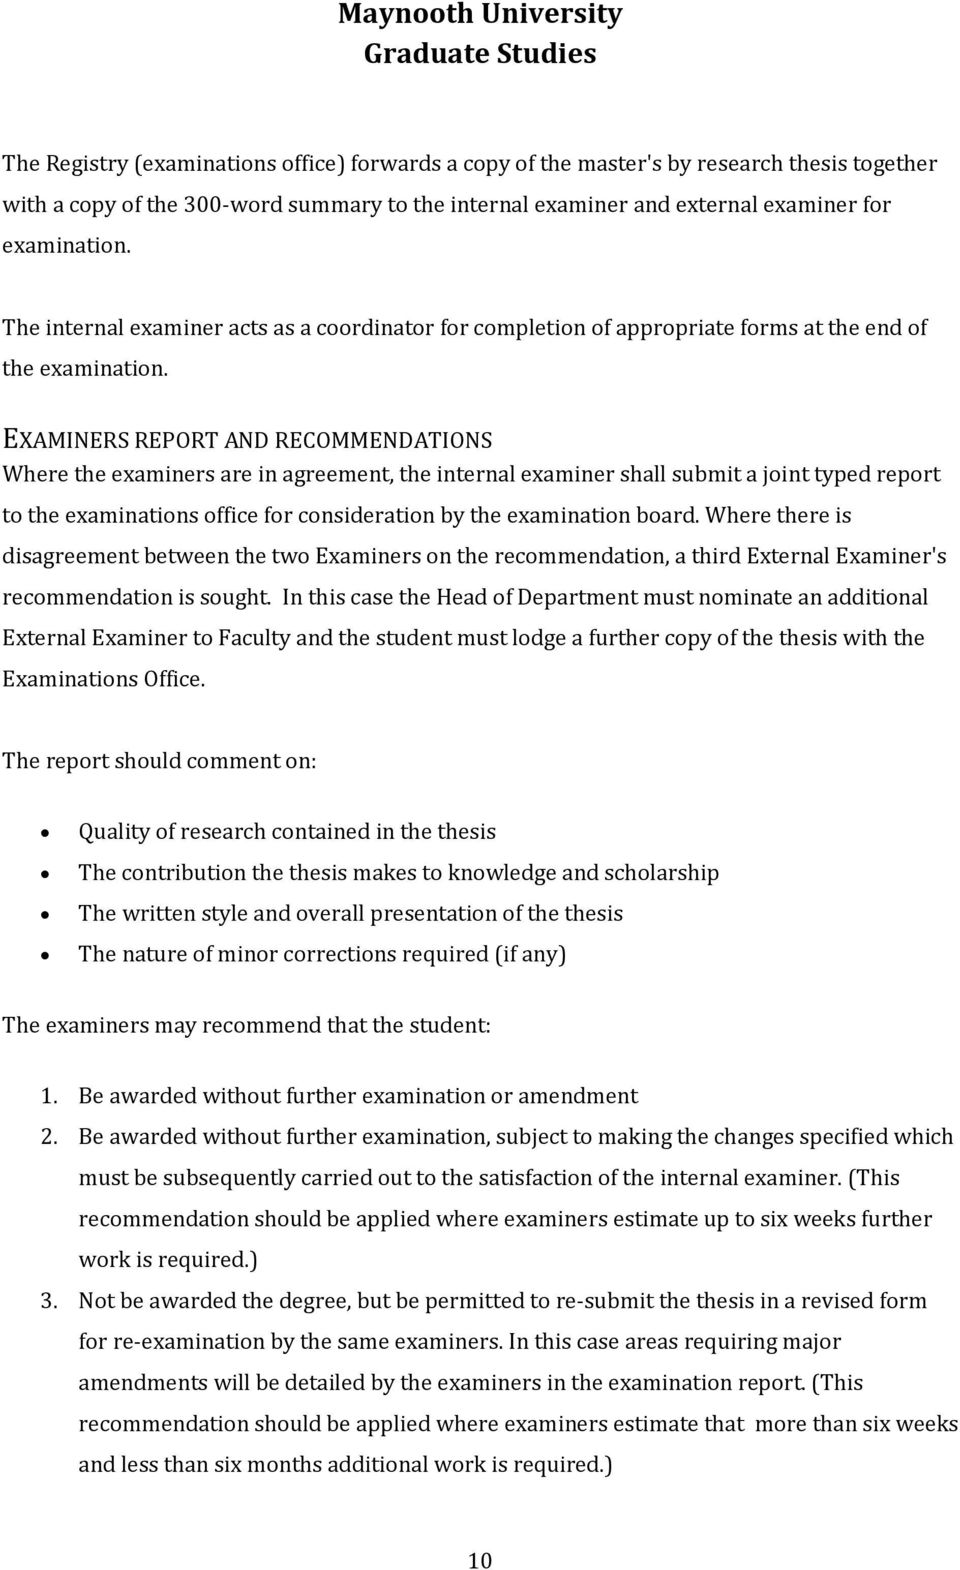 EXAMINERS REPORT AND RECOMMENDATIONS Where the examiners are in agreement, the internal examiner shall submit a joint typed report to the examinations office for consideration by the examination